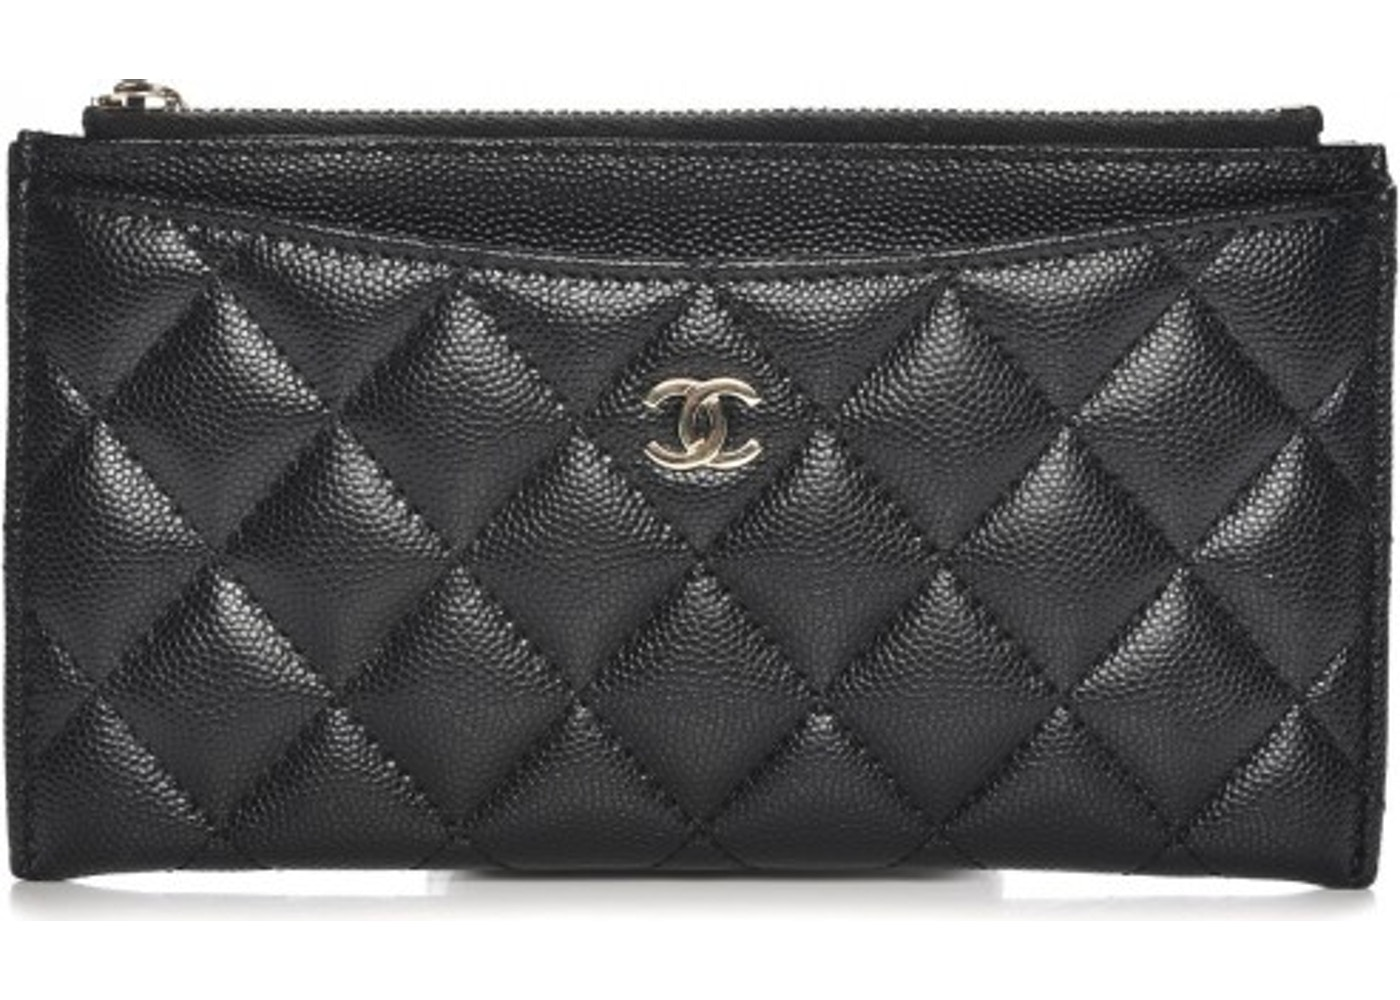 305213fcfa20 Chanel Zip Classic Pouch Diamond Quilted Black